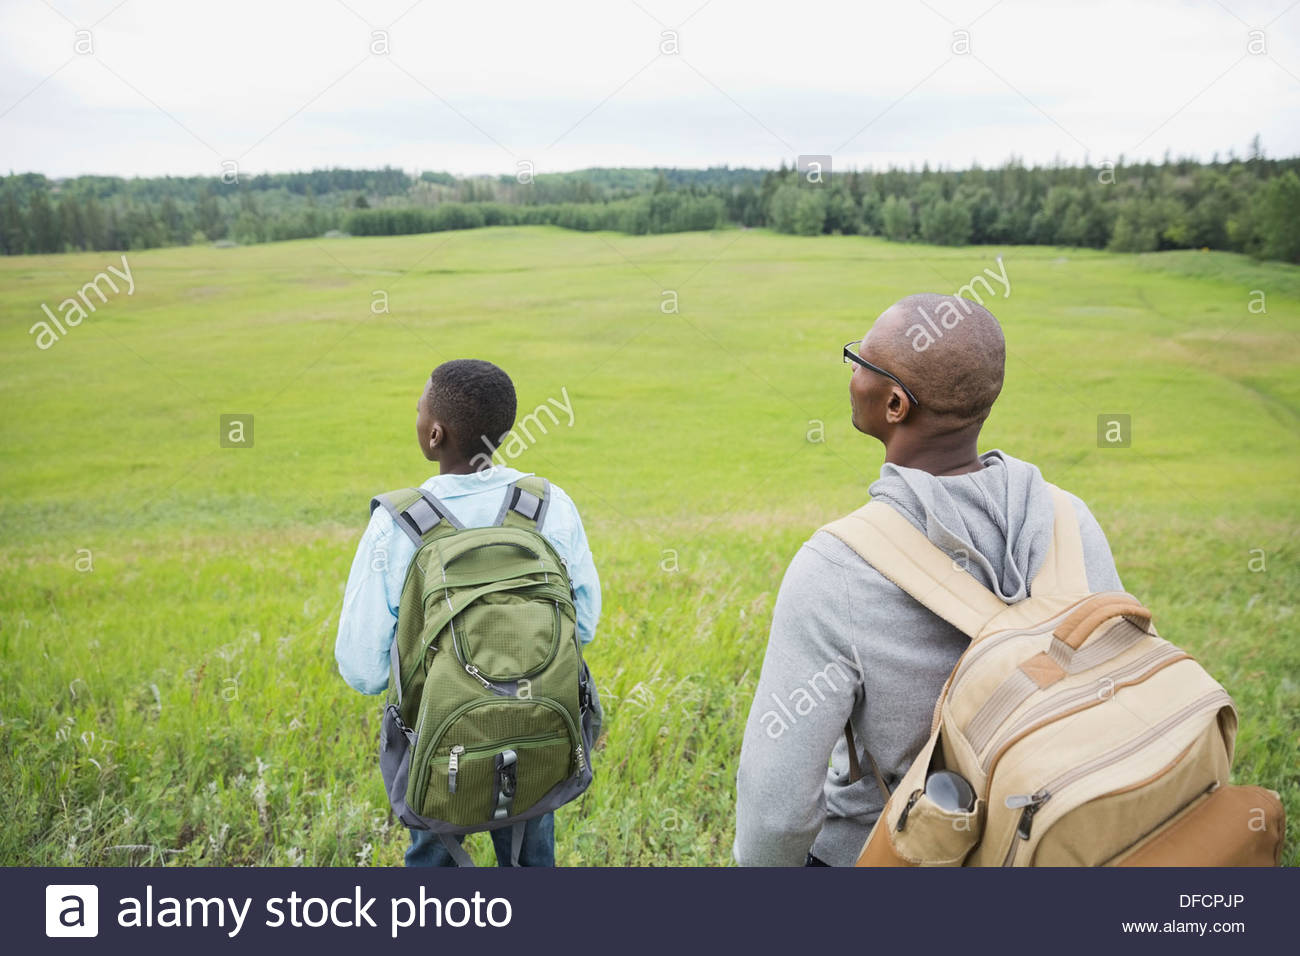 Father and son looking out onto field - Stock Image